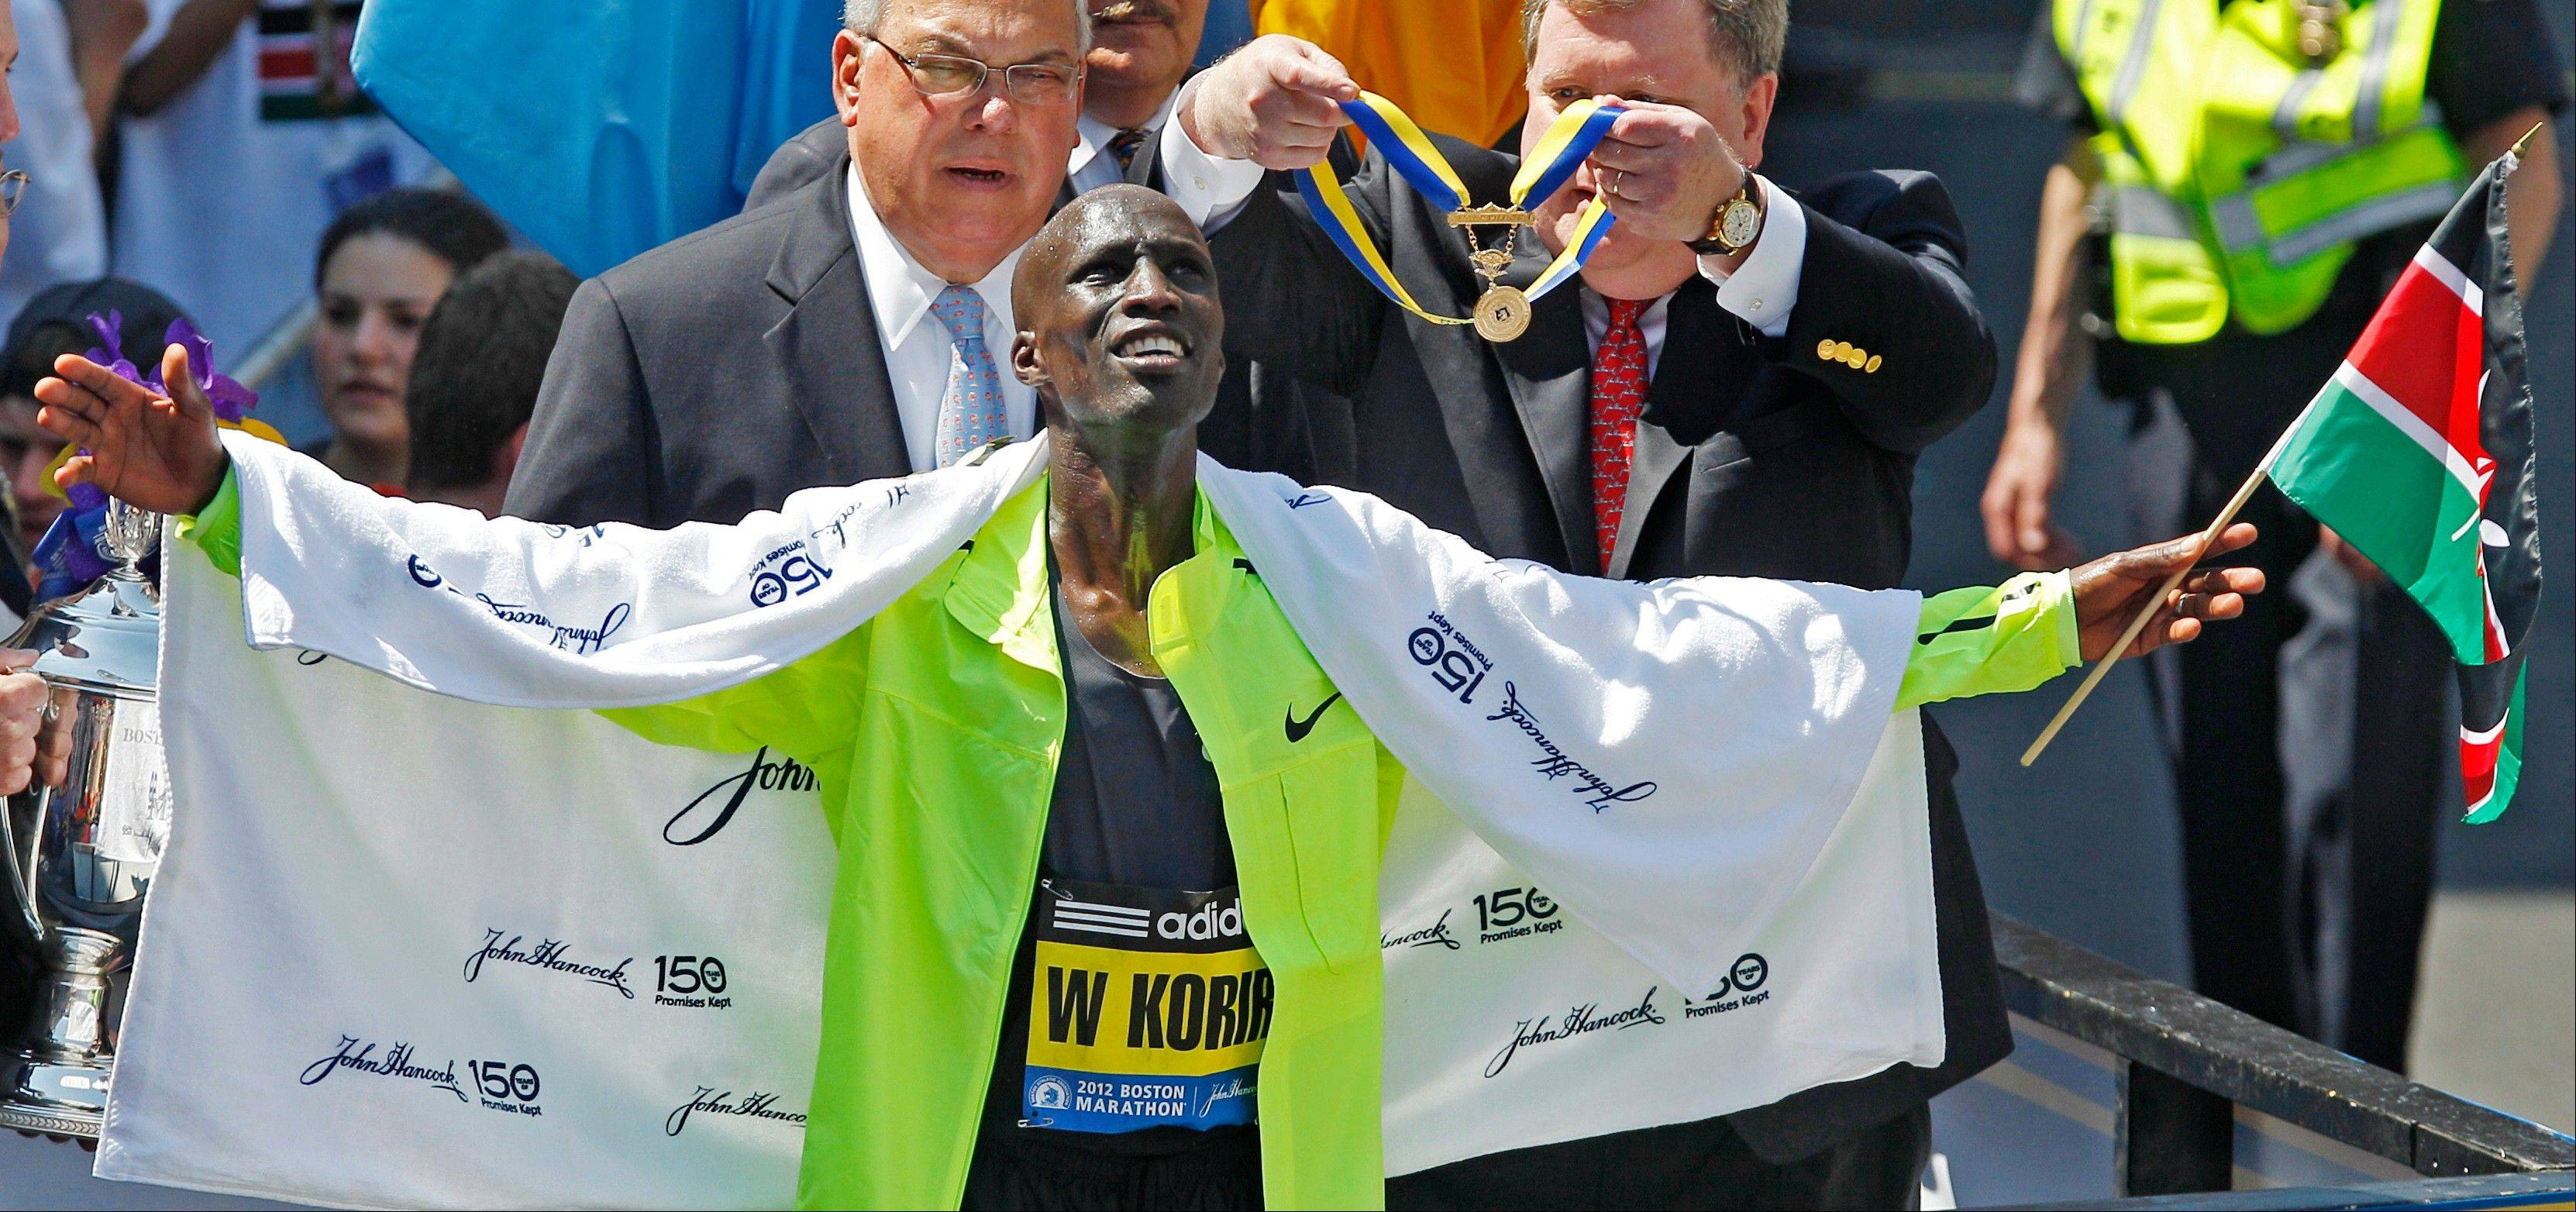 Wesley Korir of Kenya celebrates after winning the 116th Boston Marathon on April 16. He will run the Chicago Marathon this fall for the fifth consecutive year.